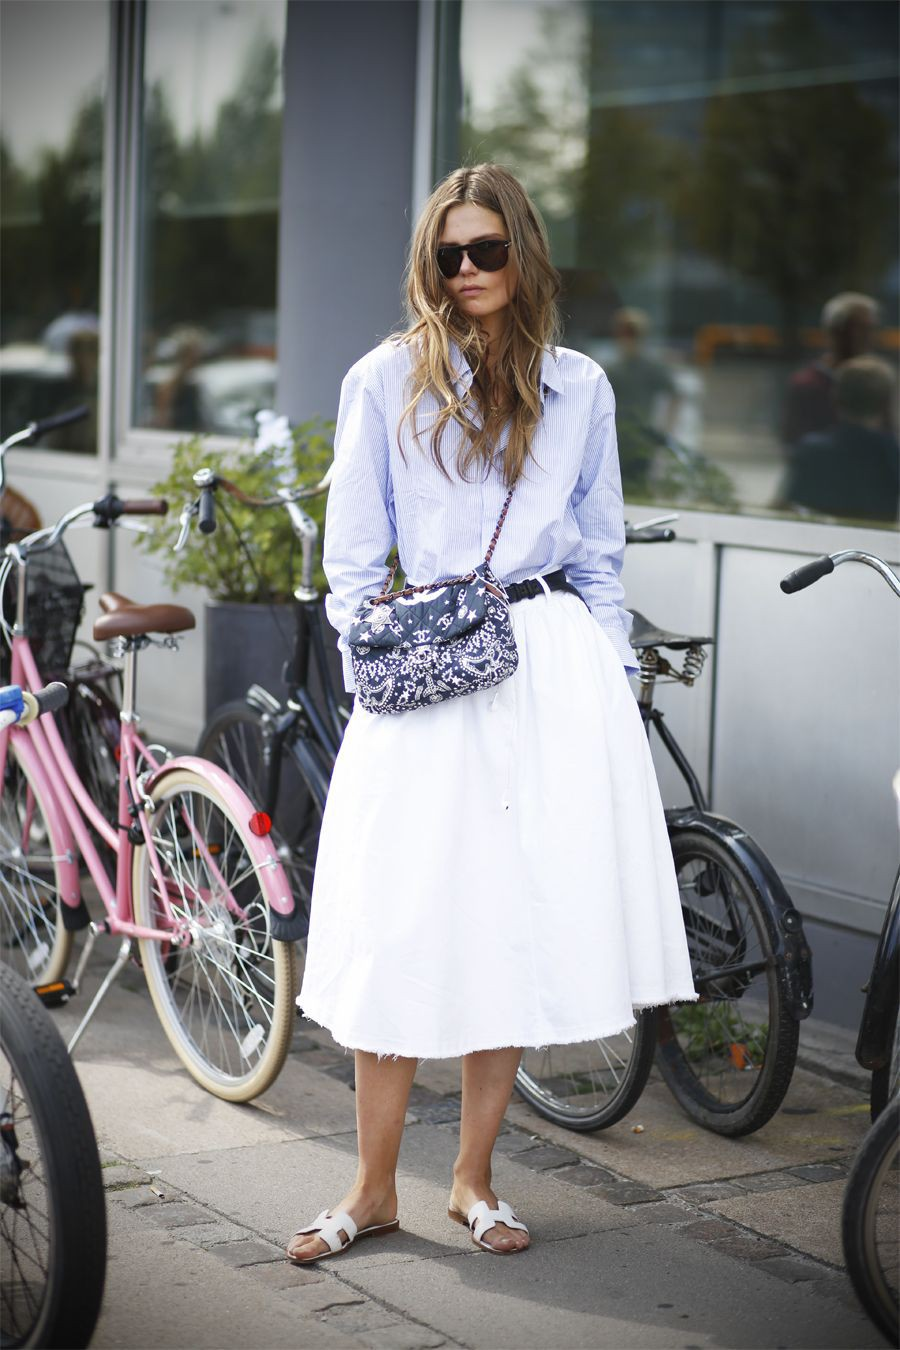 Outfits With White Skirt, Caroline Brasch Nielsen, Copenhagen Fashion Week